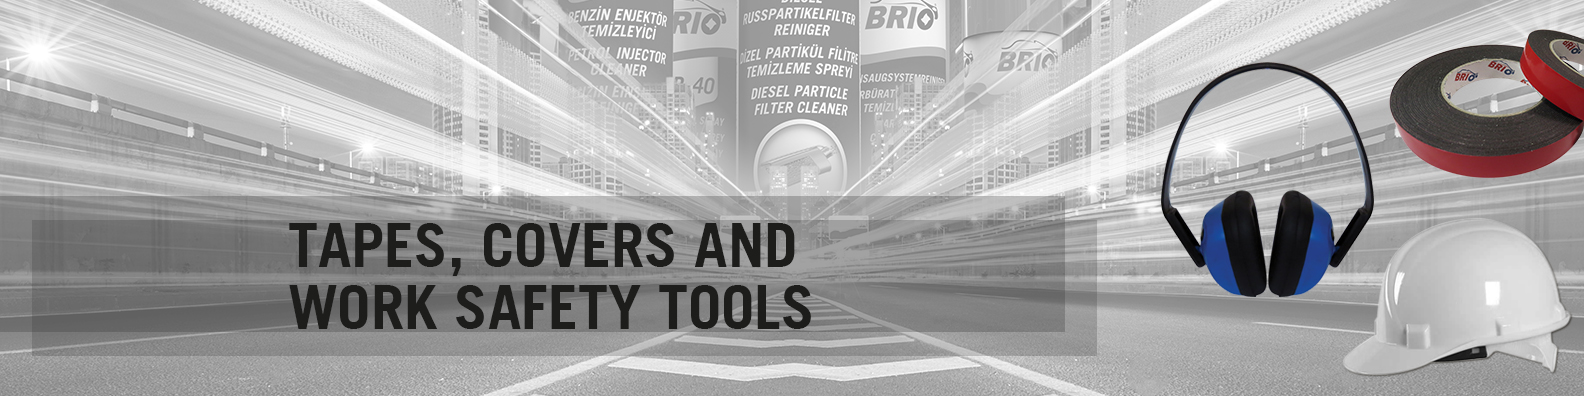 BRIO Europe Tapes, Covers and Work Safety Tools